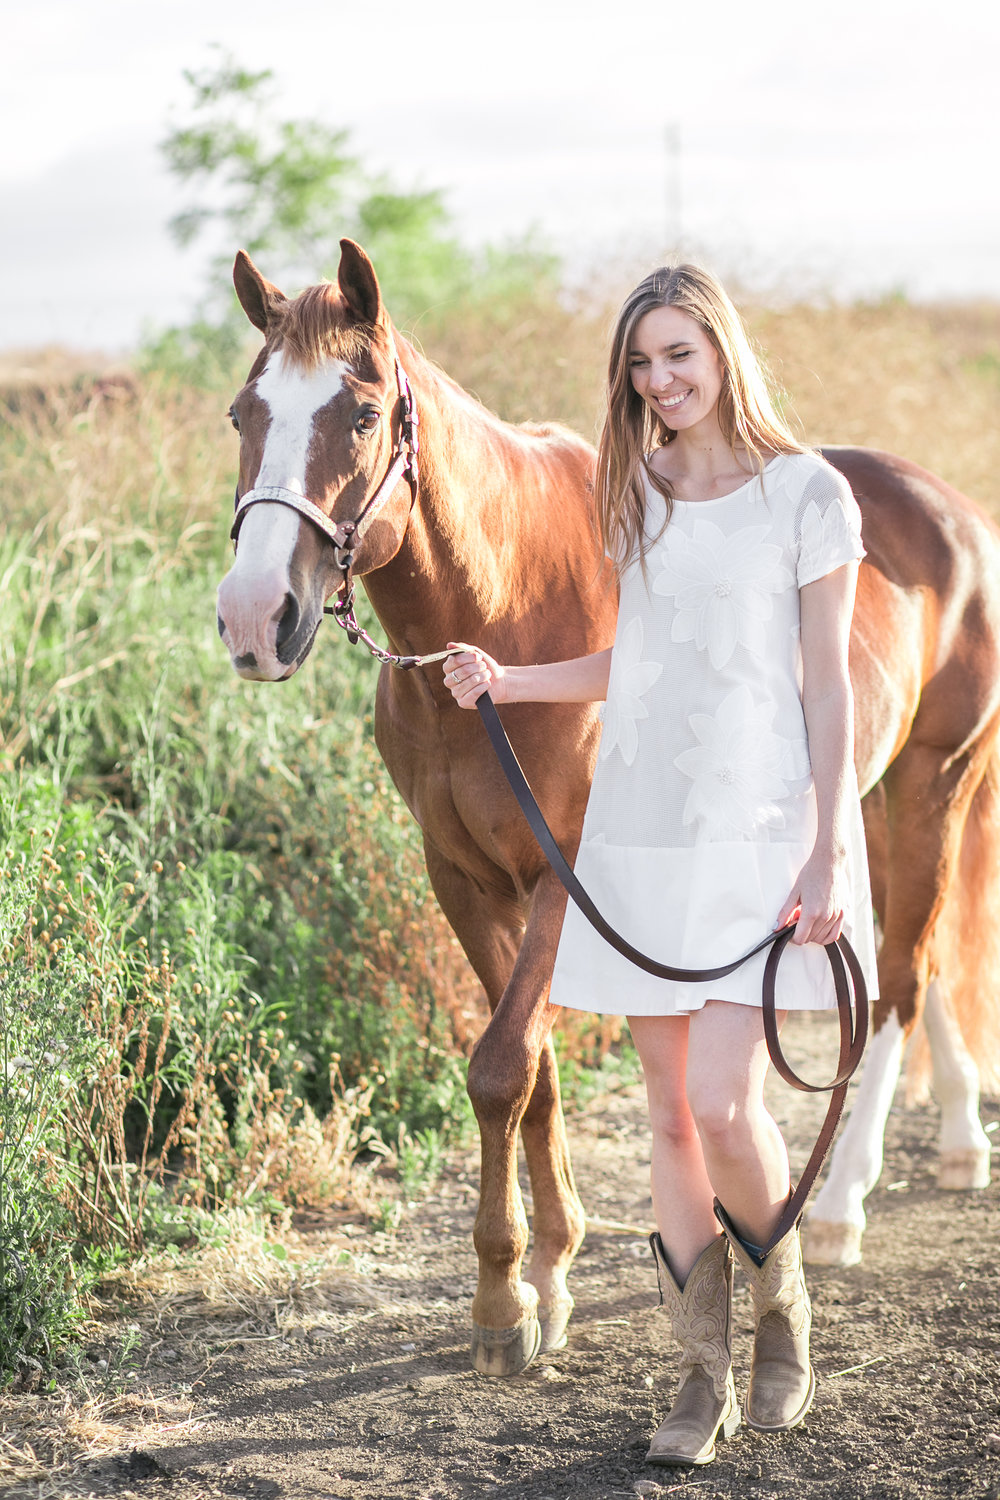 Mendola_Family _Session_Del_Mar_Equestrian_Ranch_2017-14.jpg